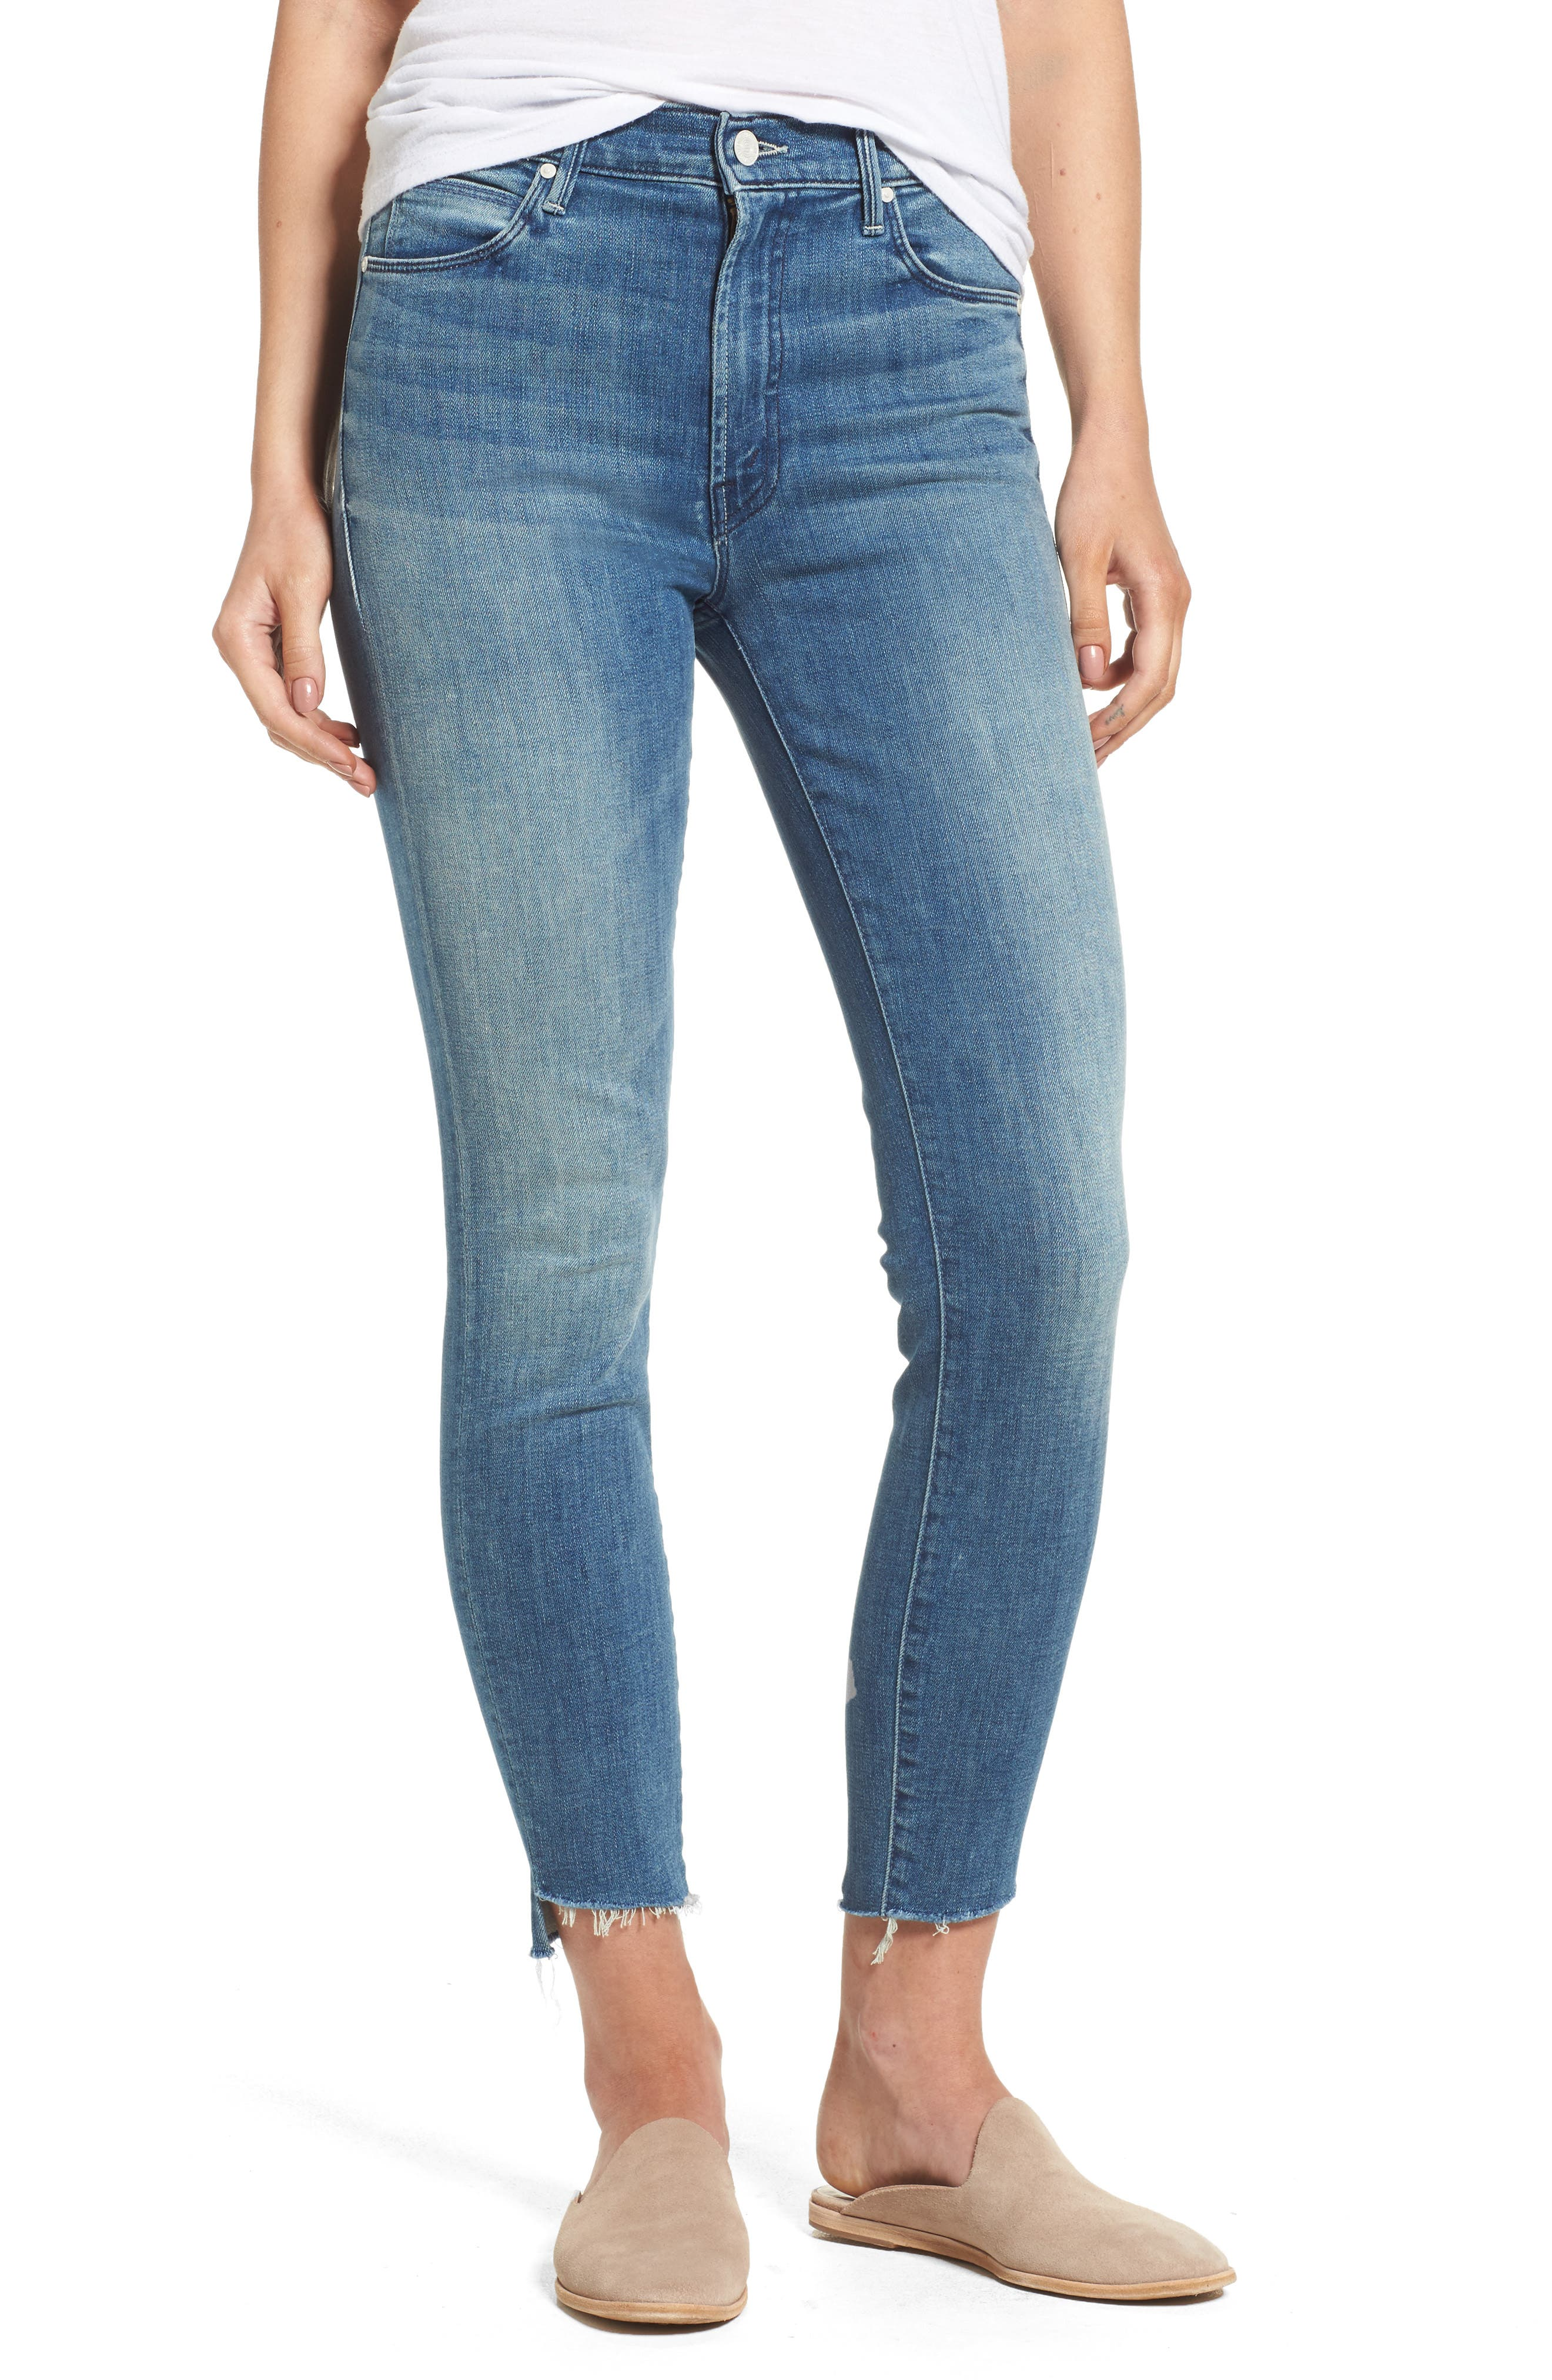 Alternate Image 1 Selected - MOTHER The Stunner High Rise Ankle Fray Jeans (Good Girls Do)